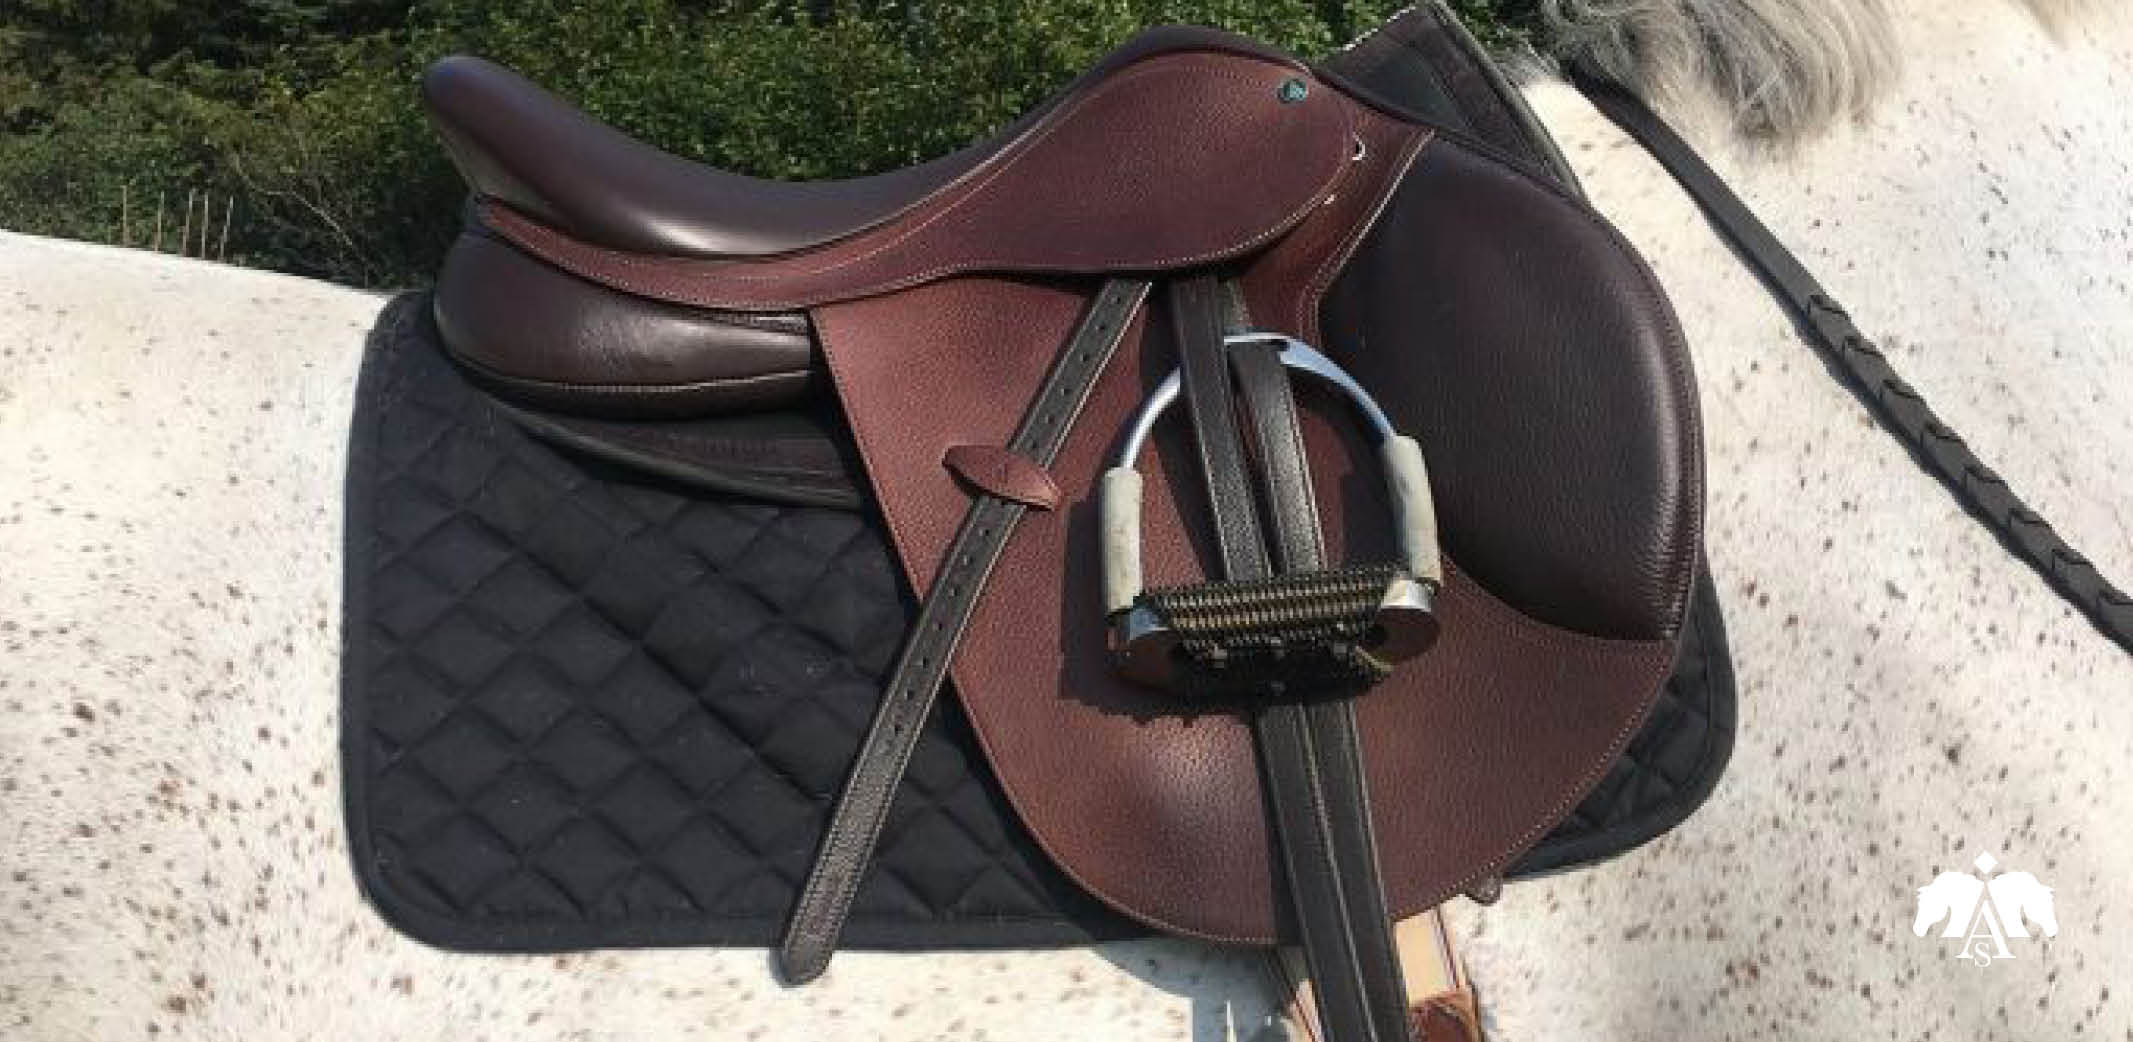 Product review: Arena Saddles - Exceptional Quality on an Acceptable Budget